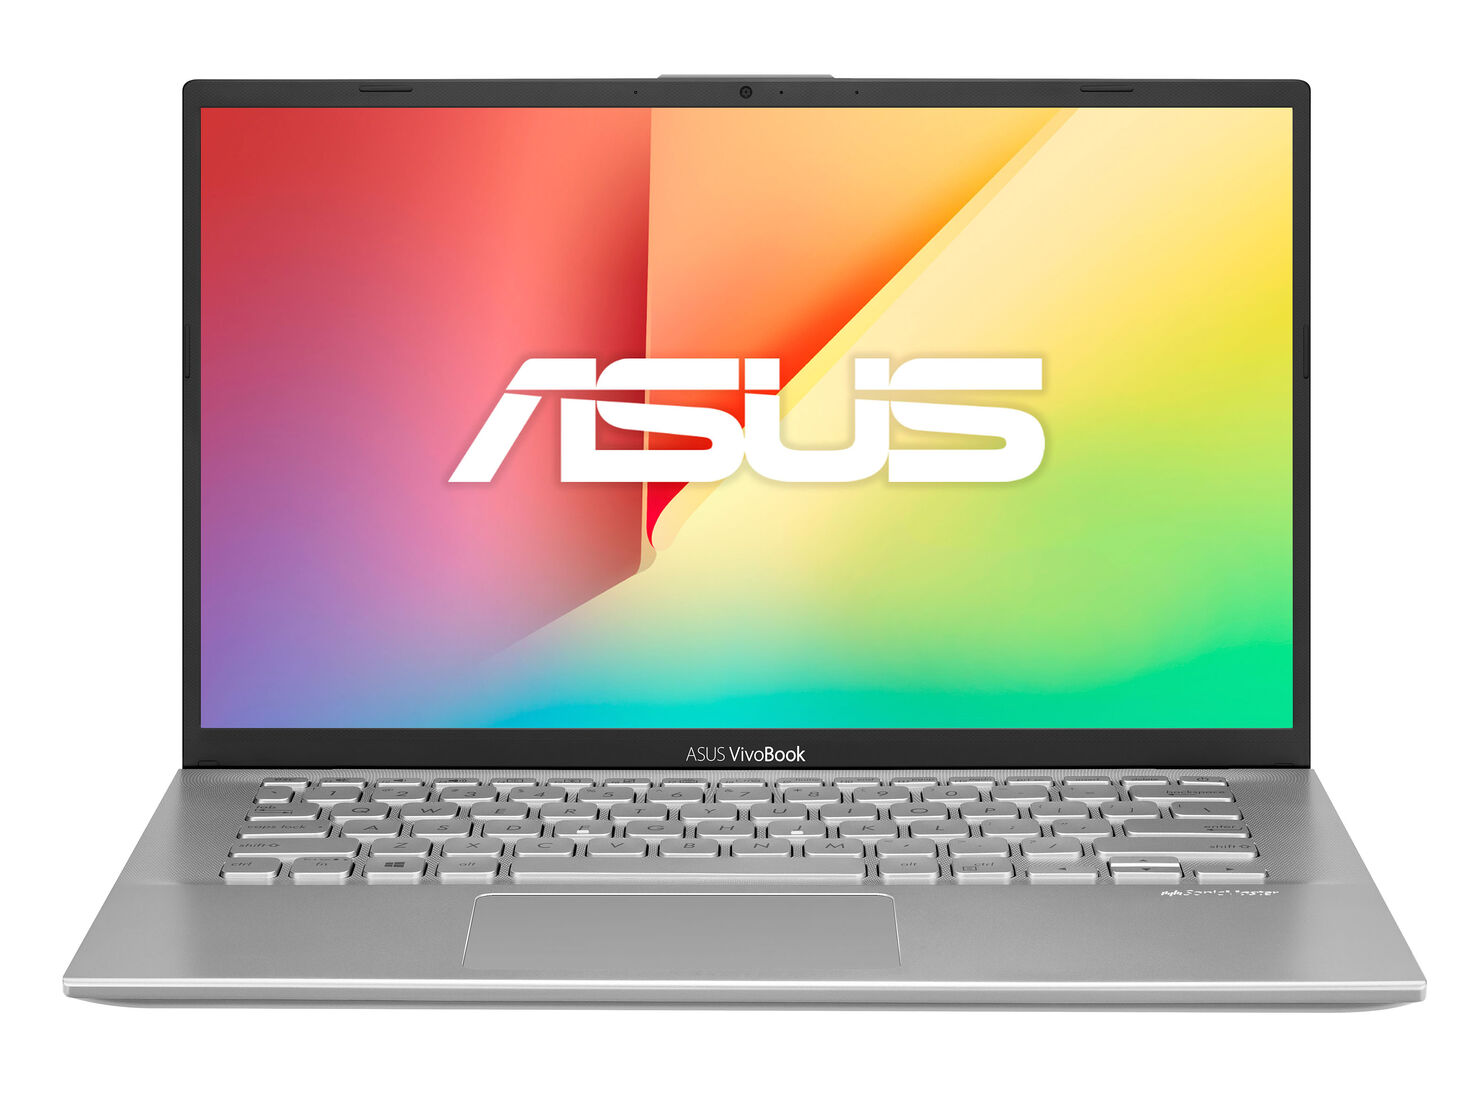 Notebook Asus Vivobook X412fa-ek728t Intel Core i3 4GB Ram 256GB SSD 14